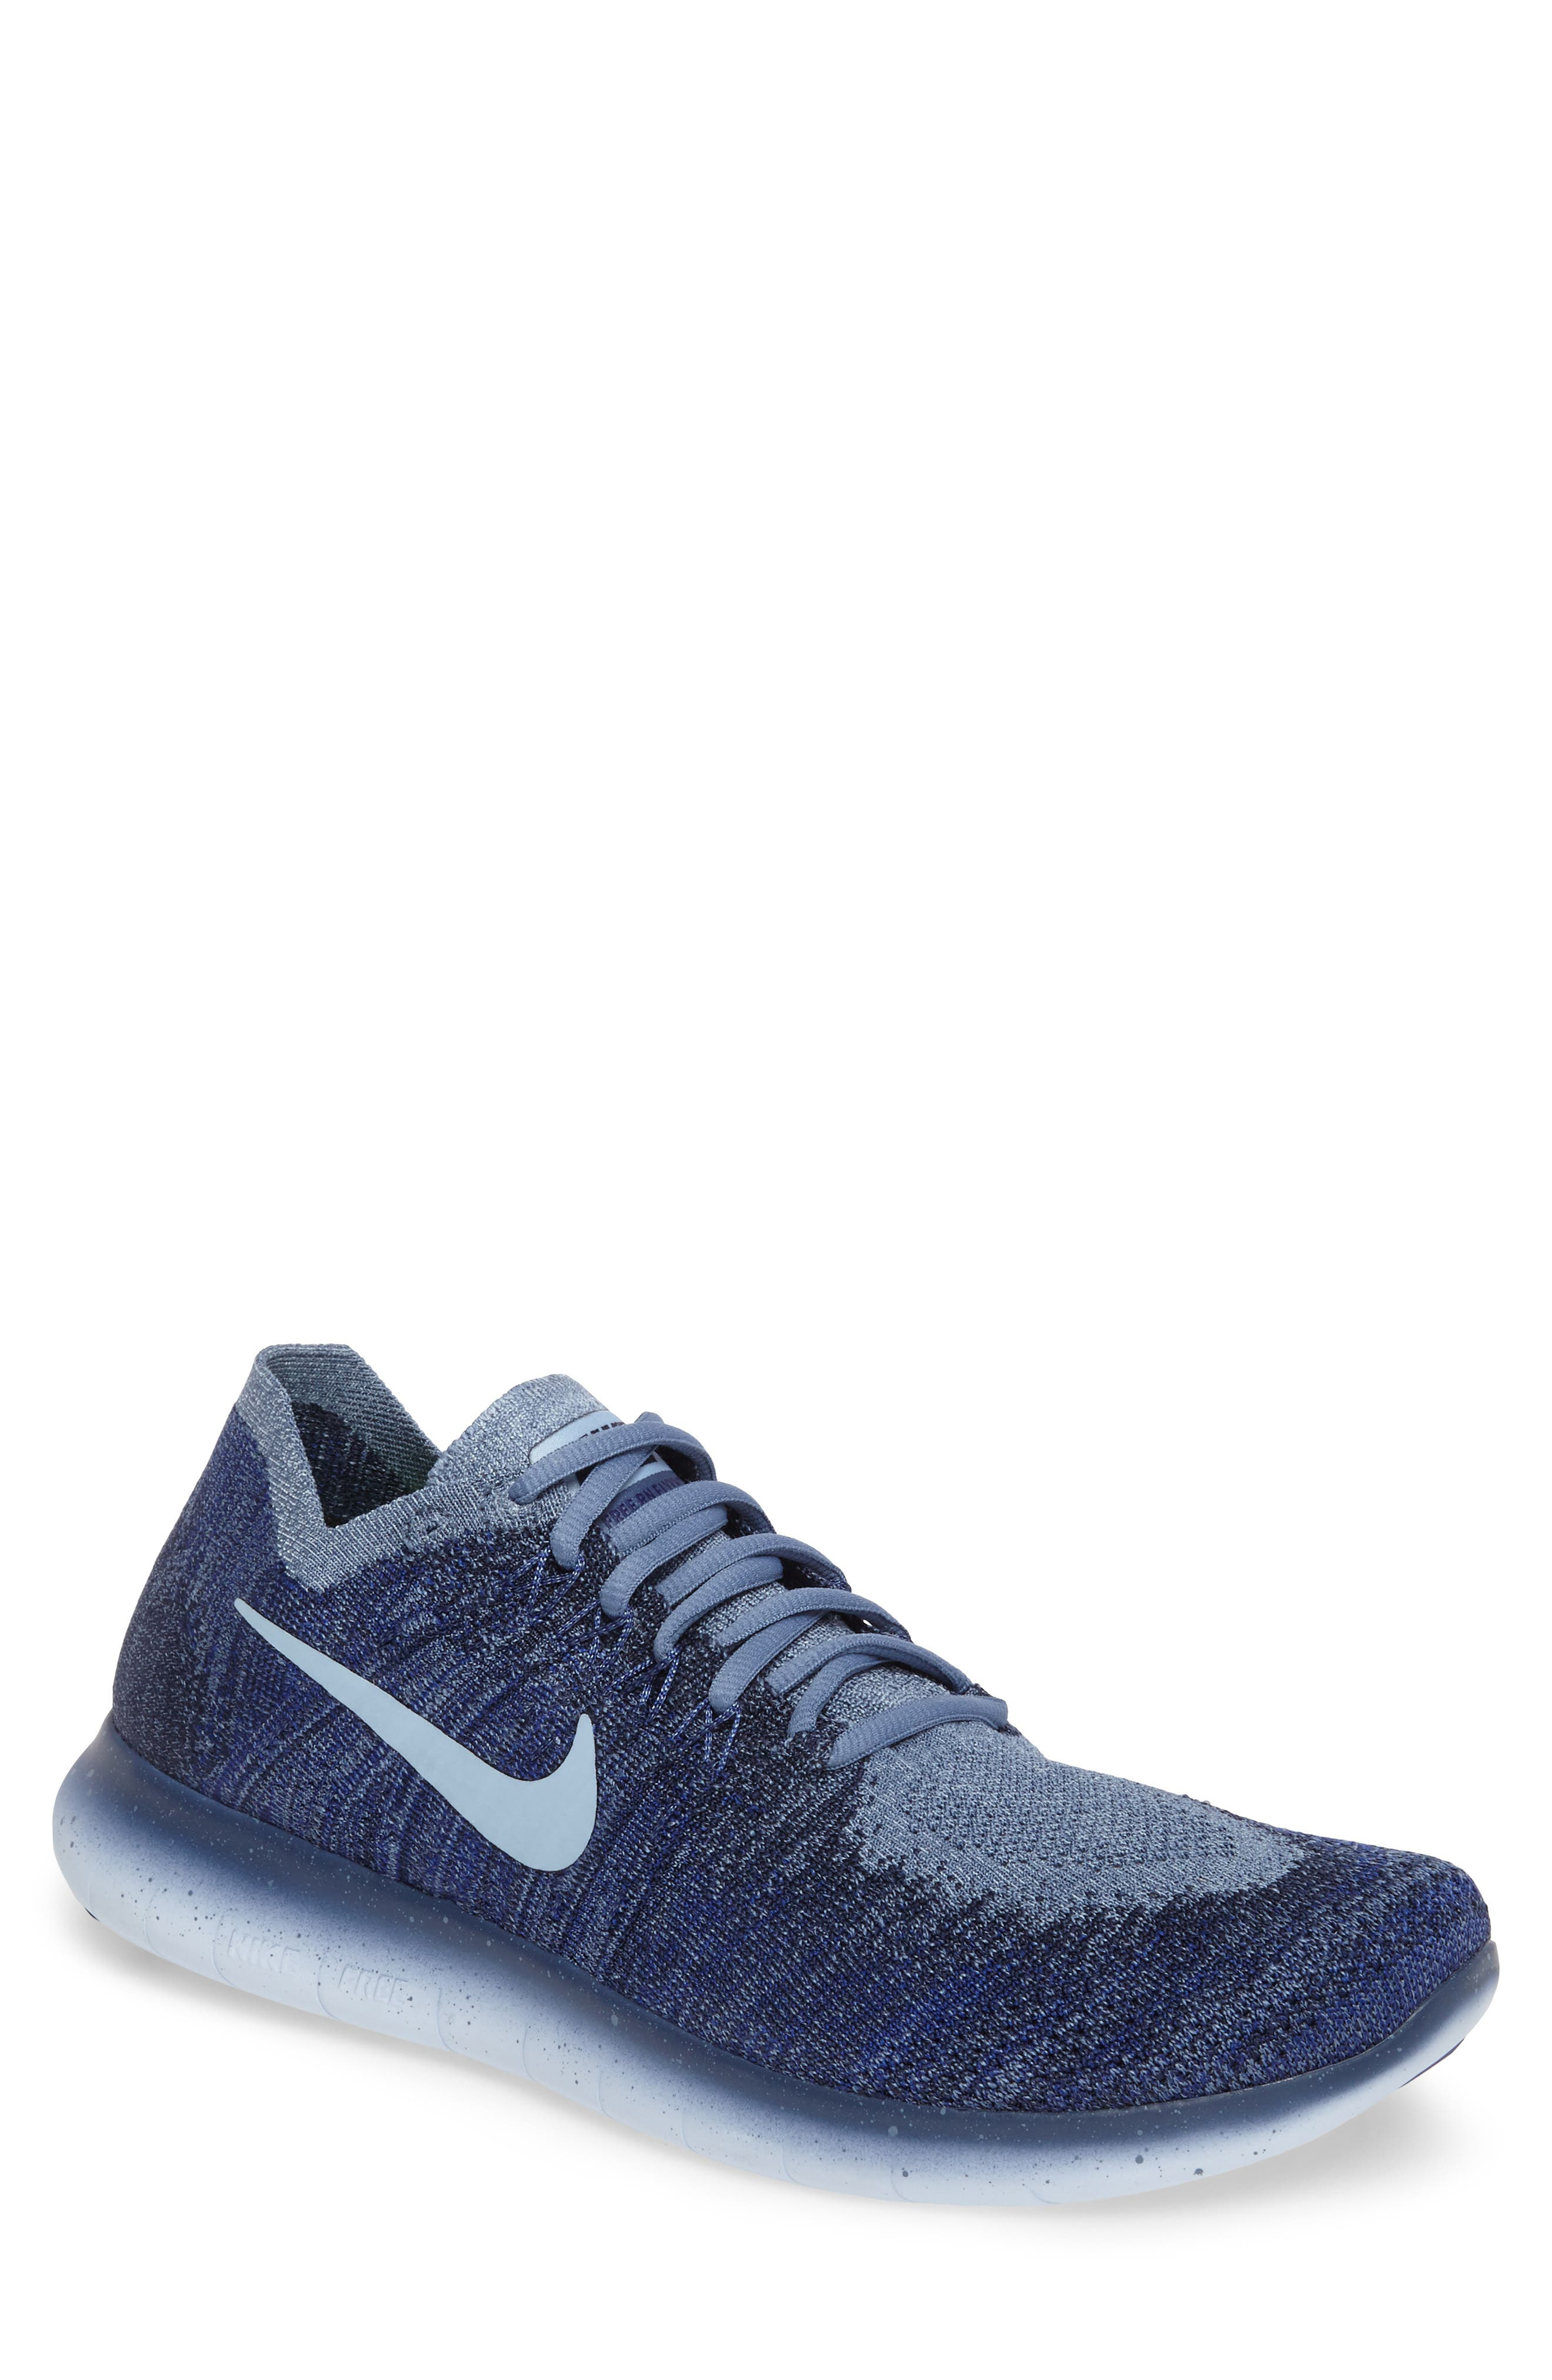 País Cerdo completamente  Buy Online nike free 0.4 flyknit Cheap > OFF70% Discounted